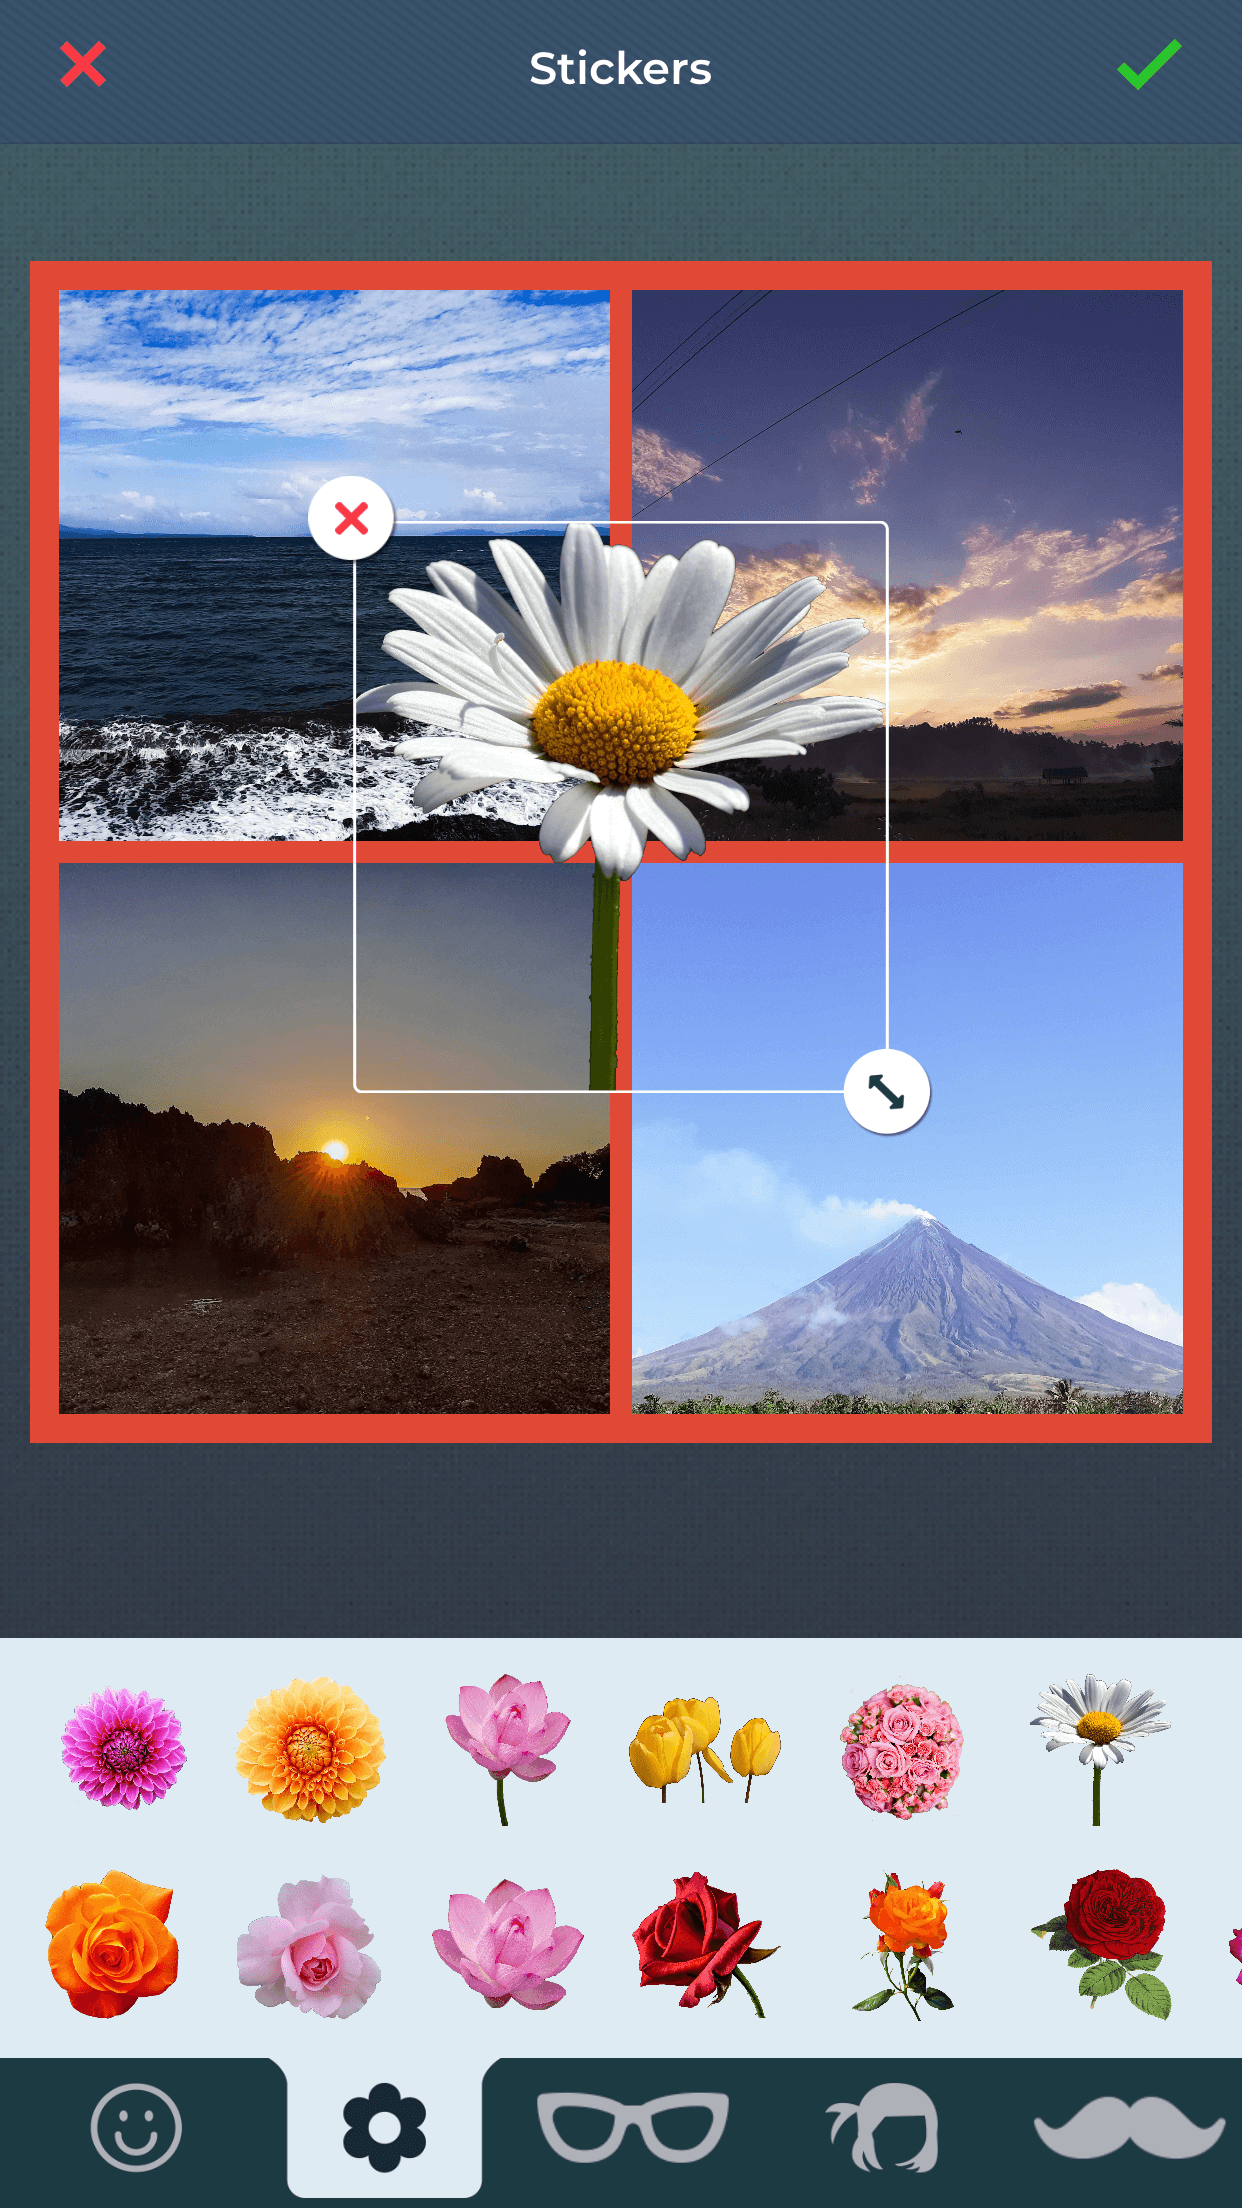 Insert beautiful stickers to collages using collage maker app.